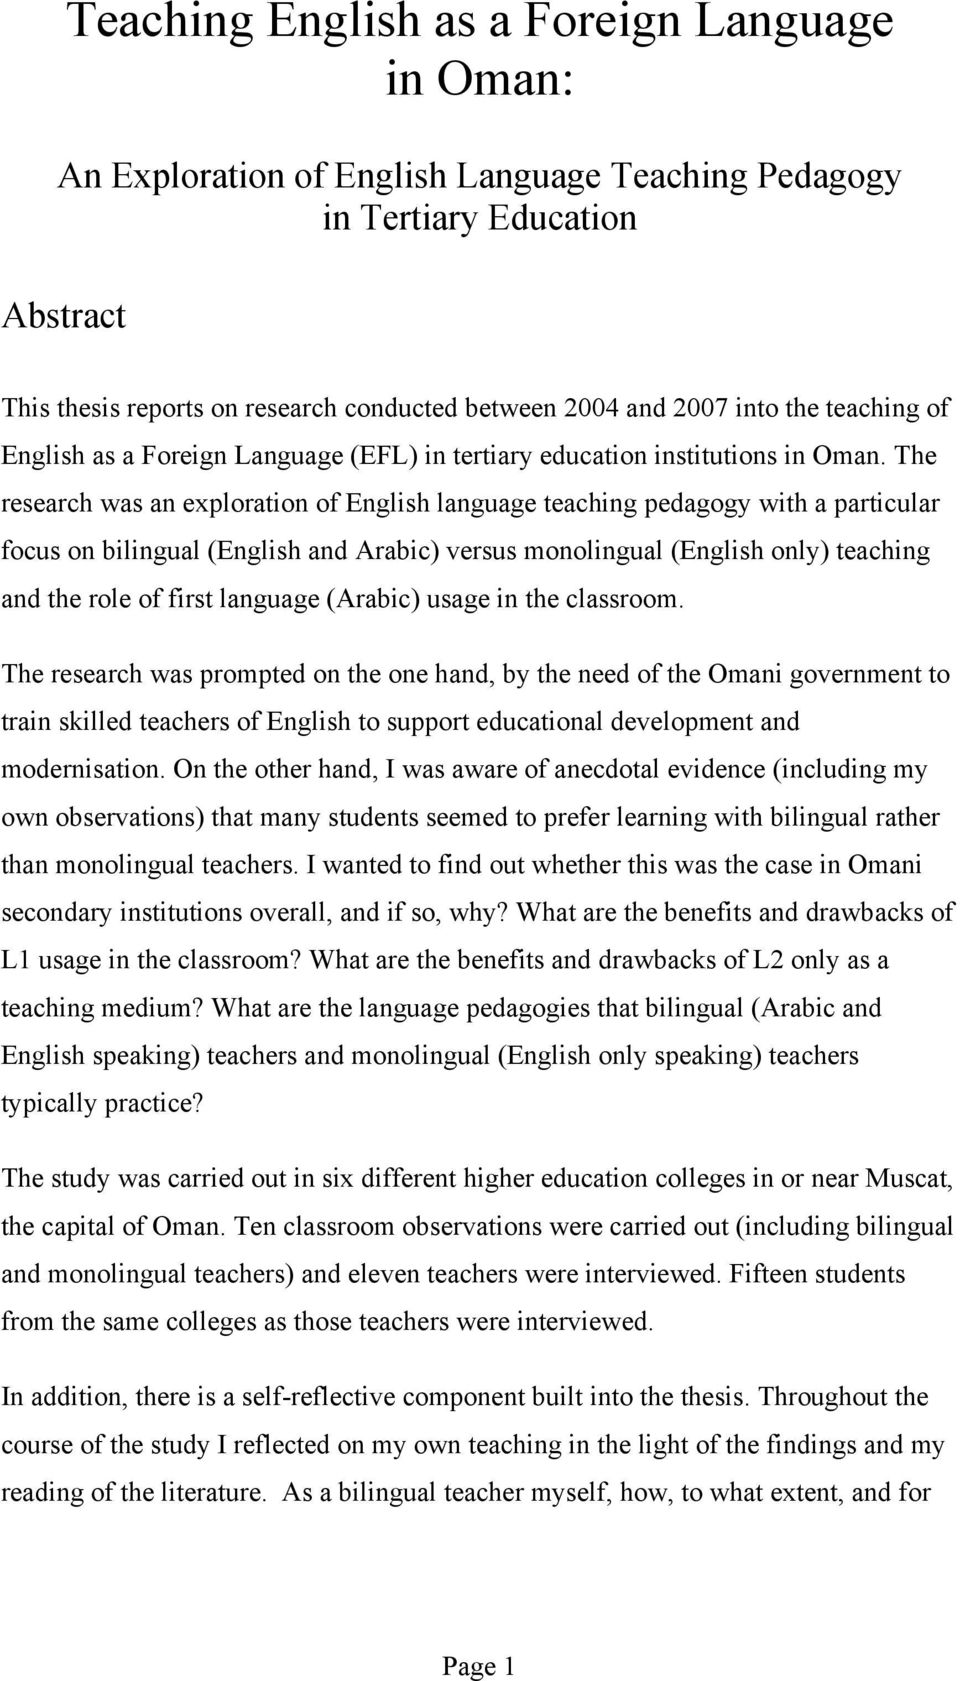 Teaching English as a Foreign Language in Oman: An